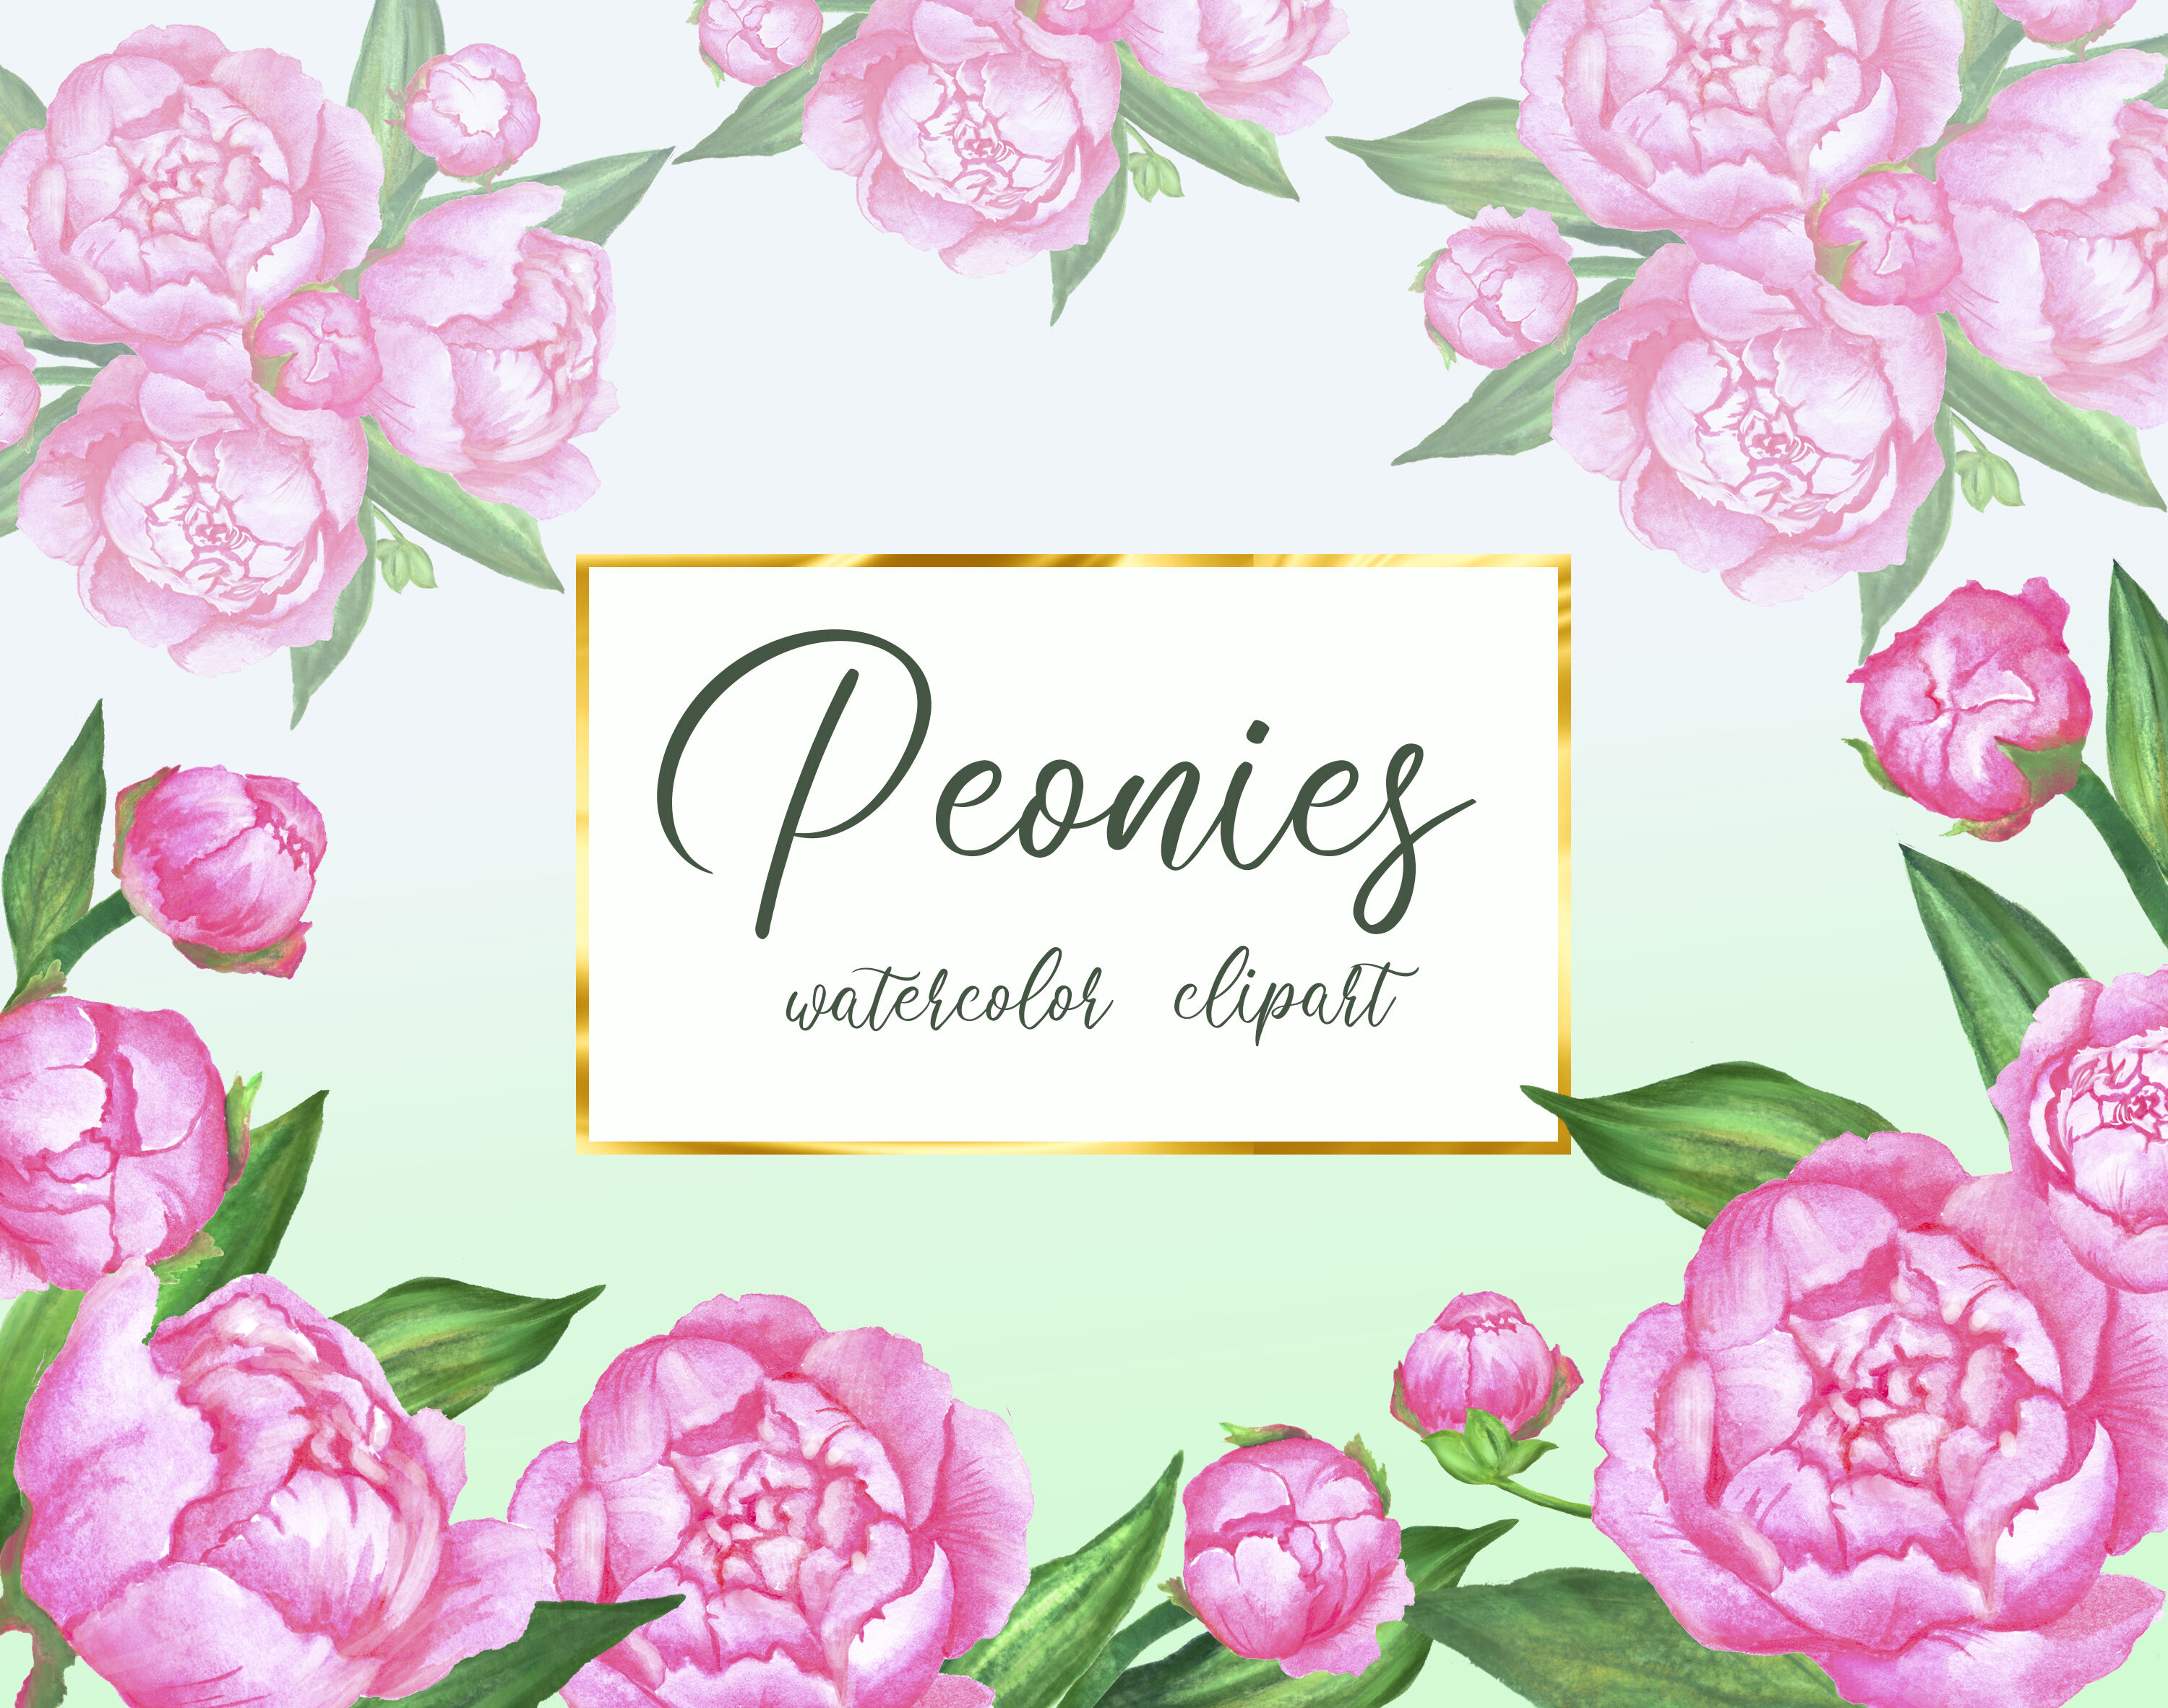 Watercolor Floral Clipart Spring Pink Peony Floral Frame And